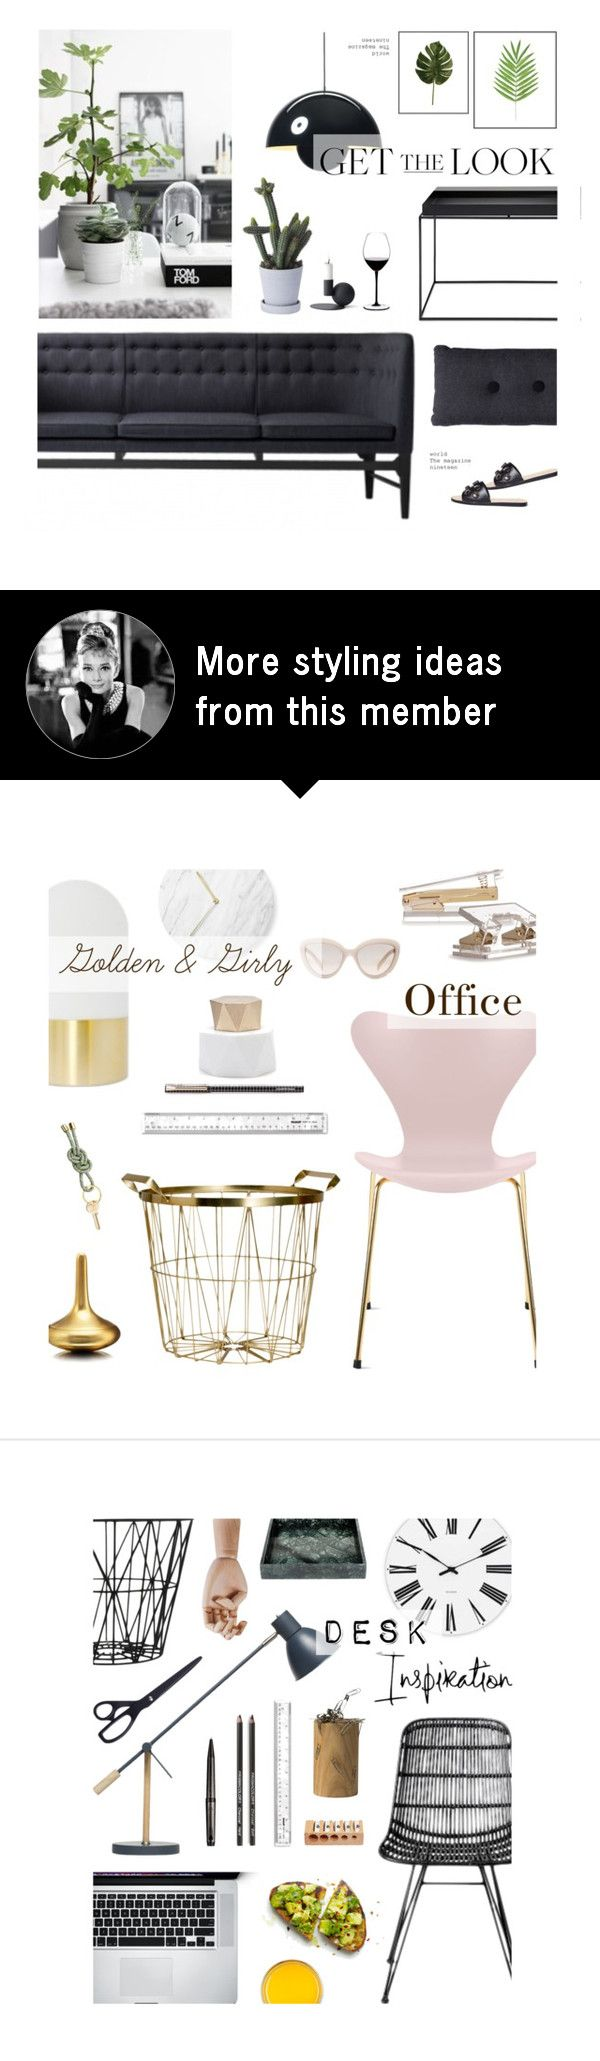 Home 42 By Line Kaasgaard On Polyvore Featuring Interior